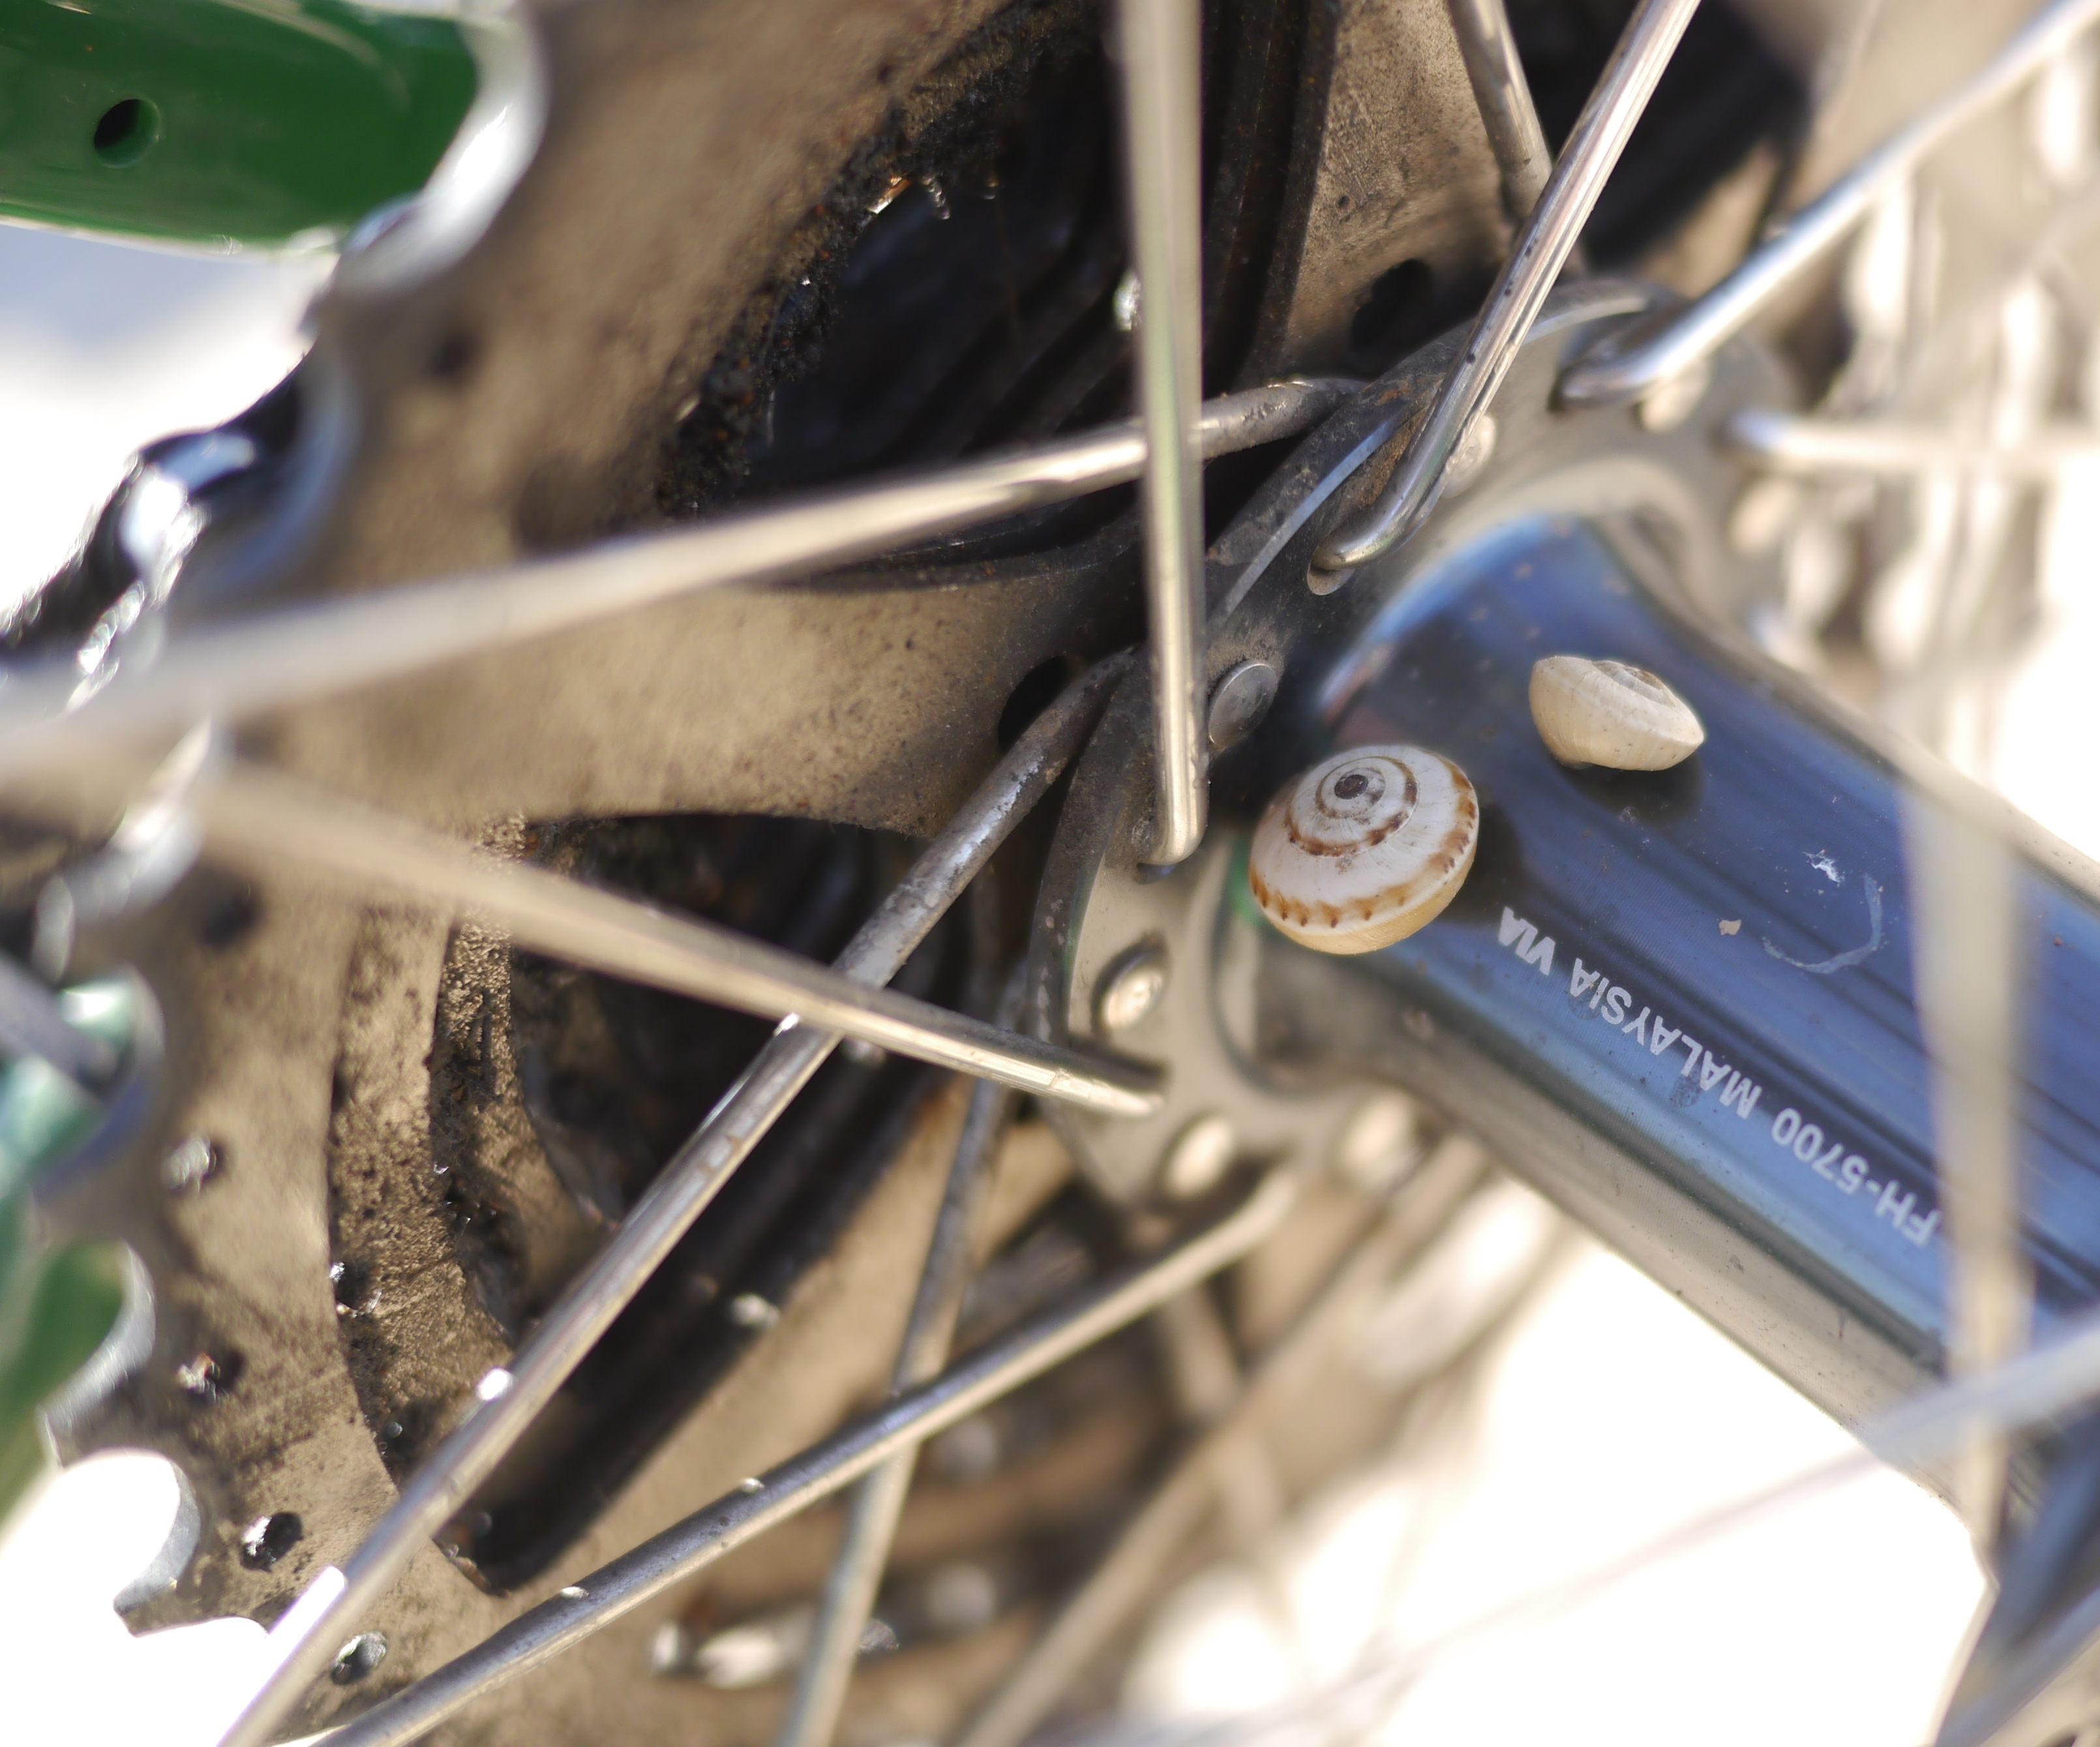 Snails on bicycle hub